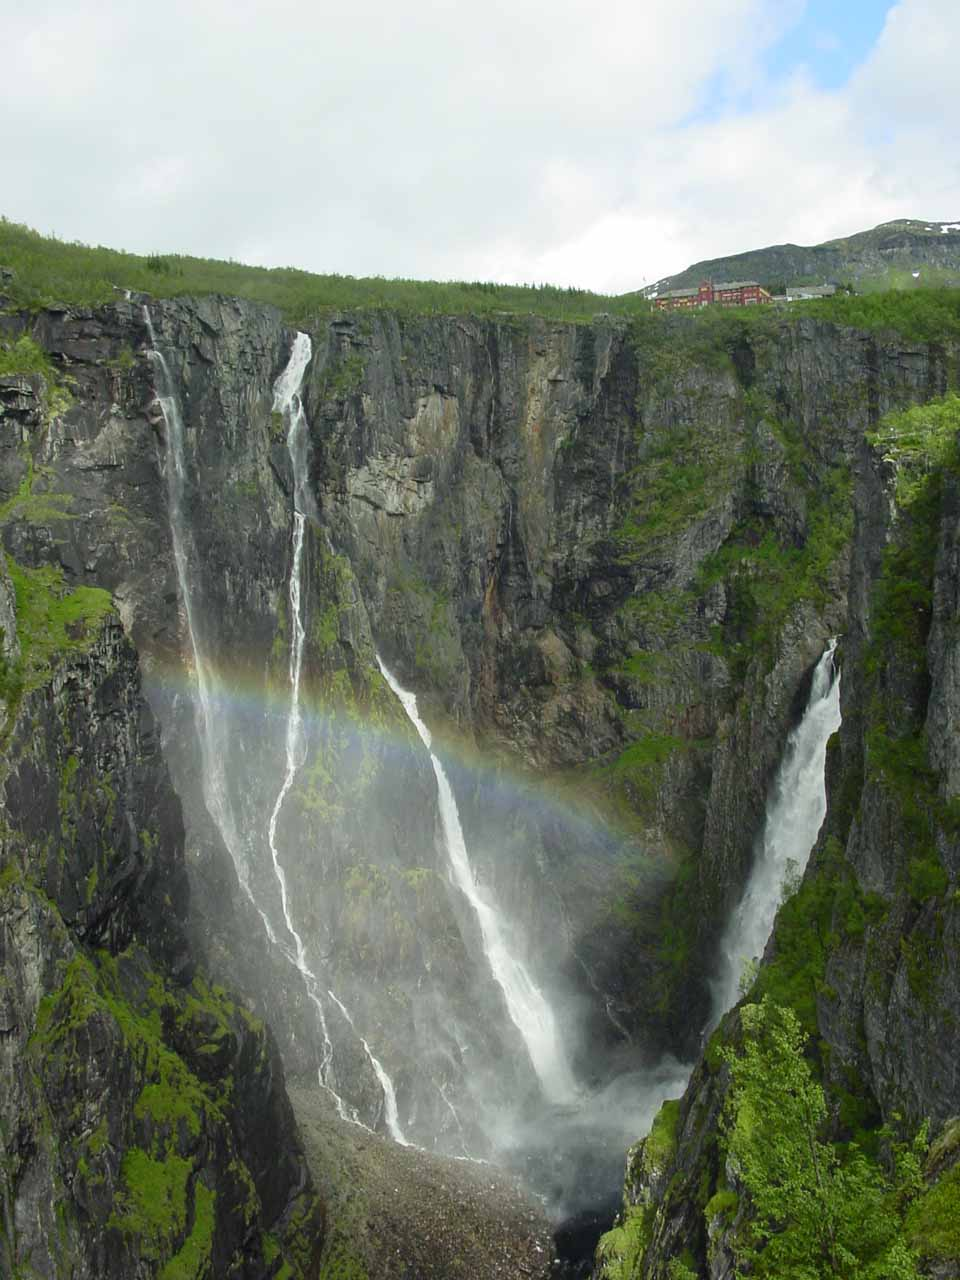 The Lower View of both Vøringsfossen (right) and Tysvikofossen (left) with a nice afternoon rainbow